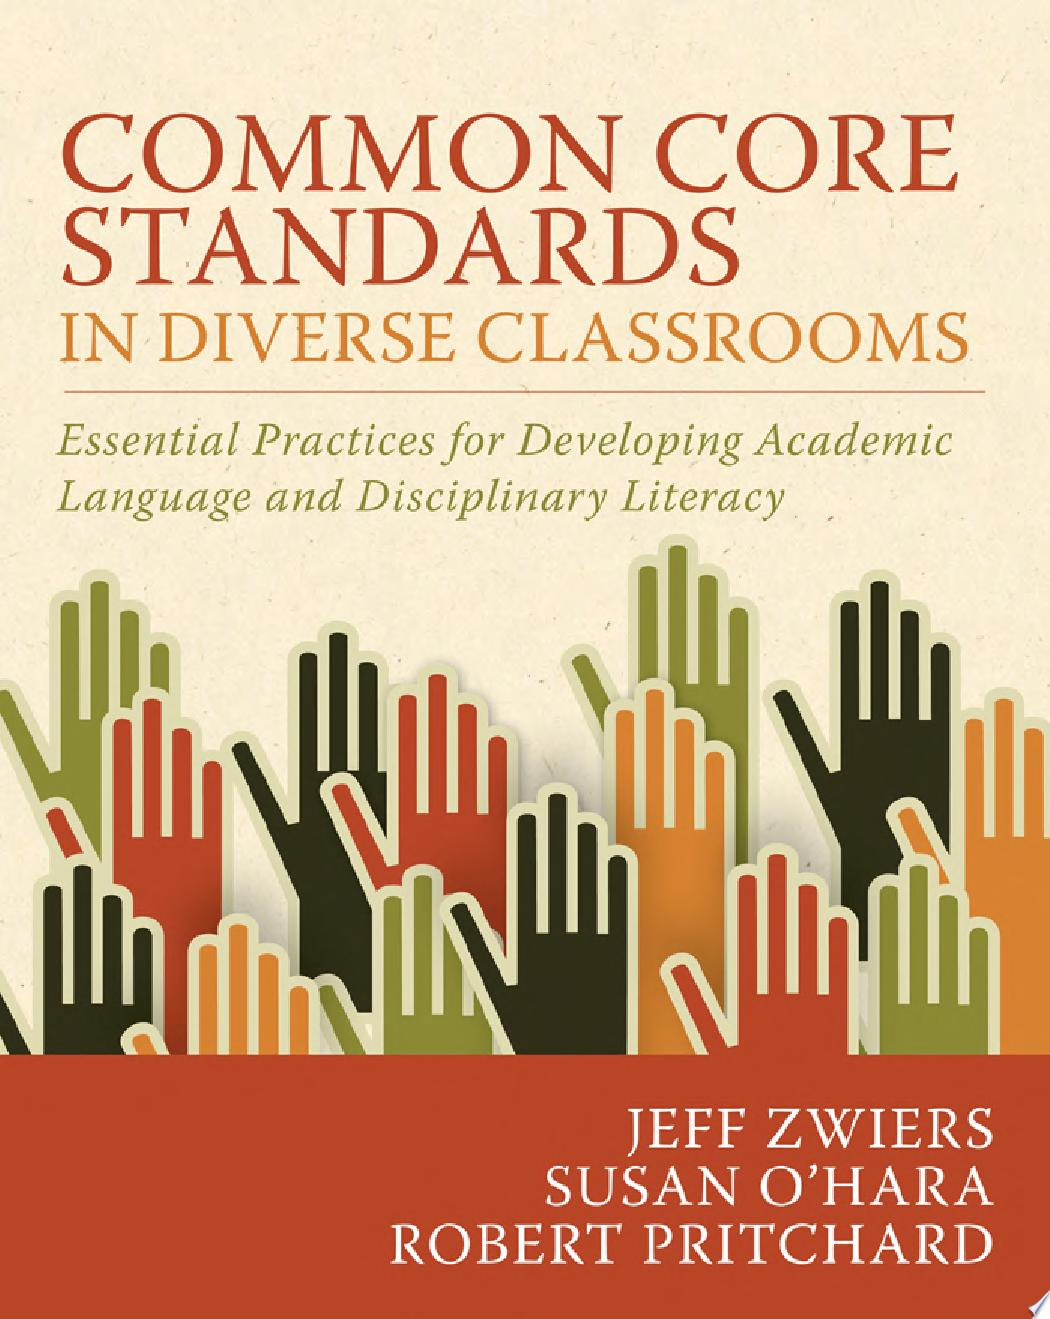 Common Core Standards in Diverse Classrooms